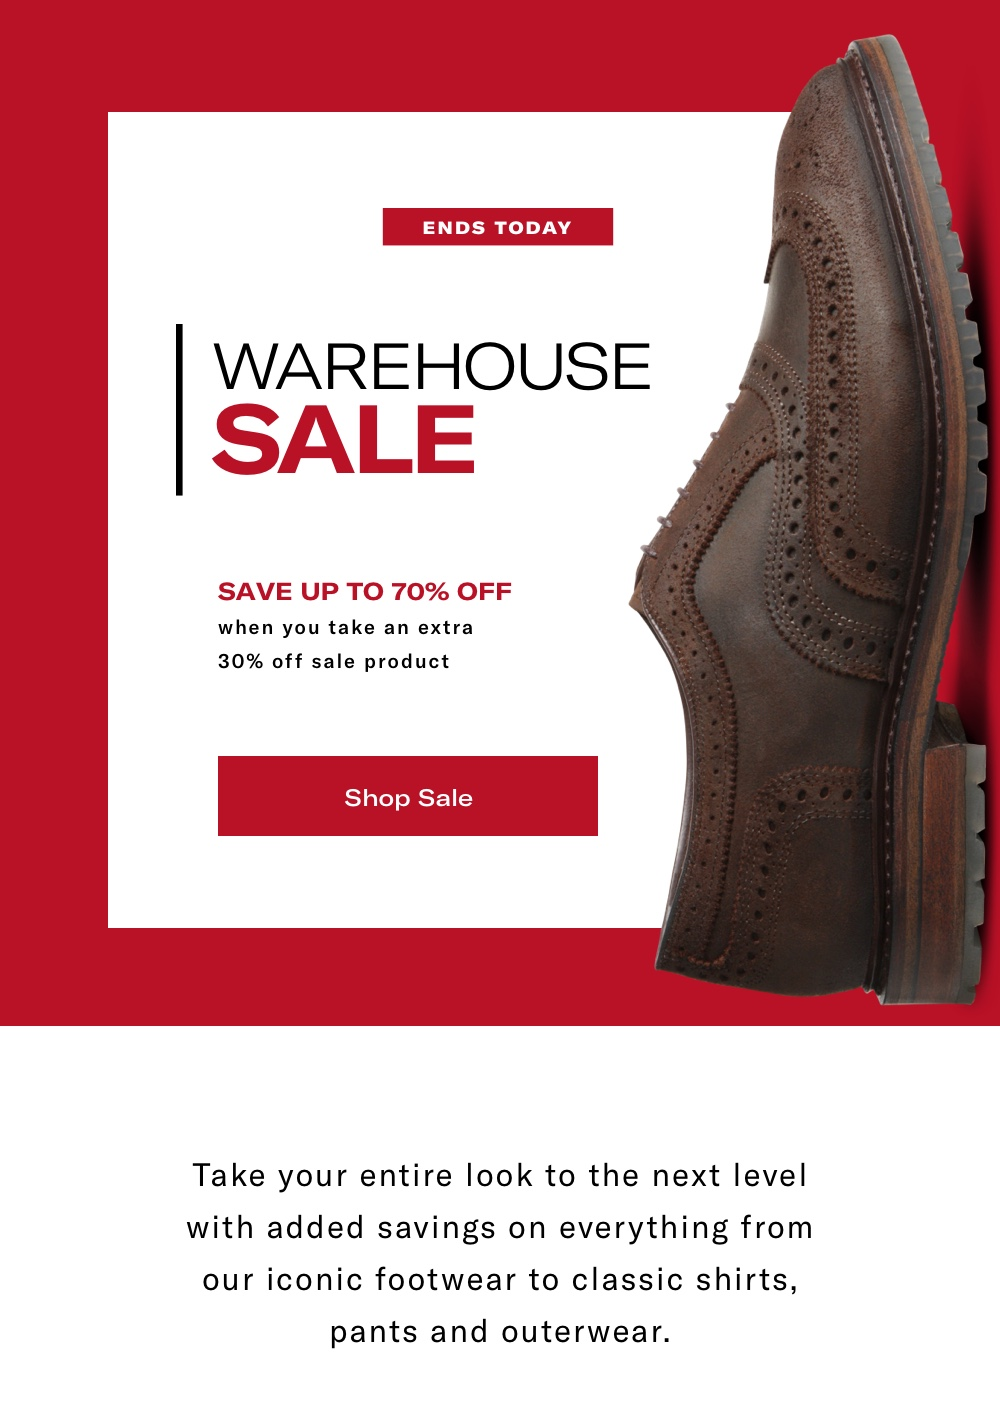 Last Day to Shop the Warehouse Sale